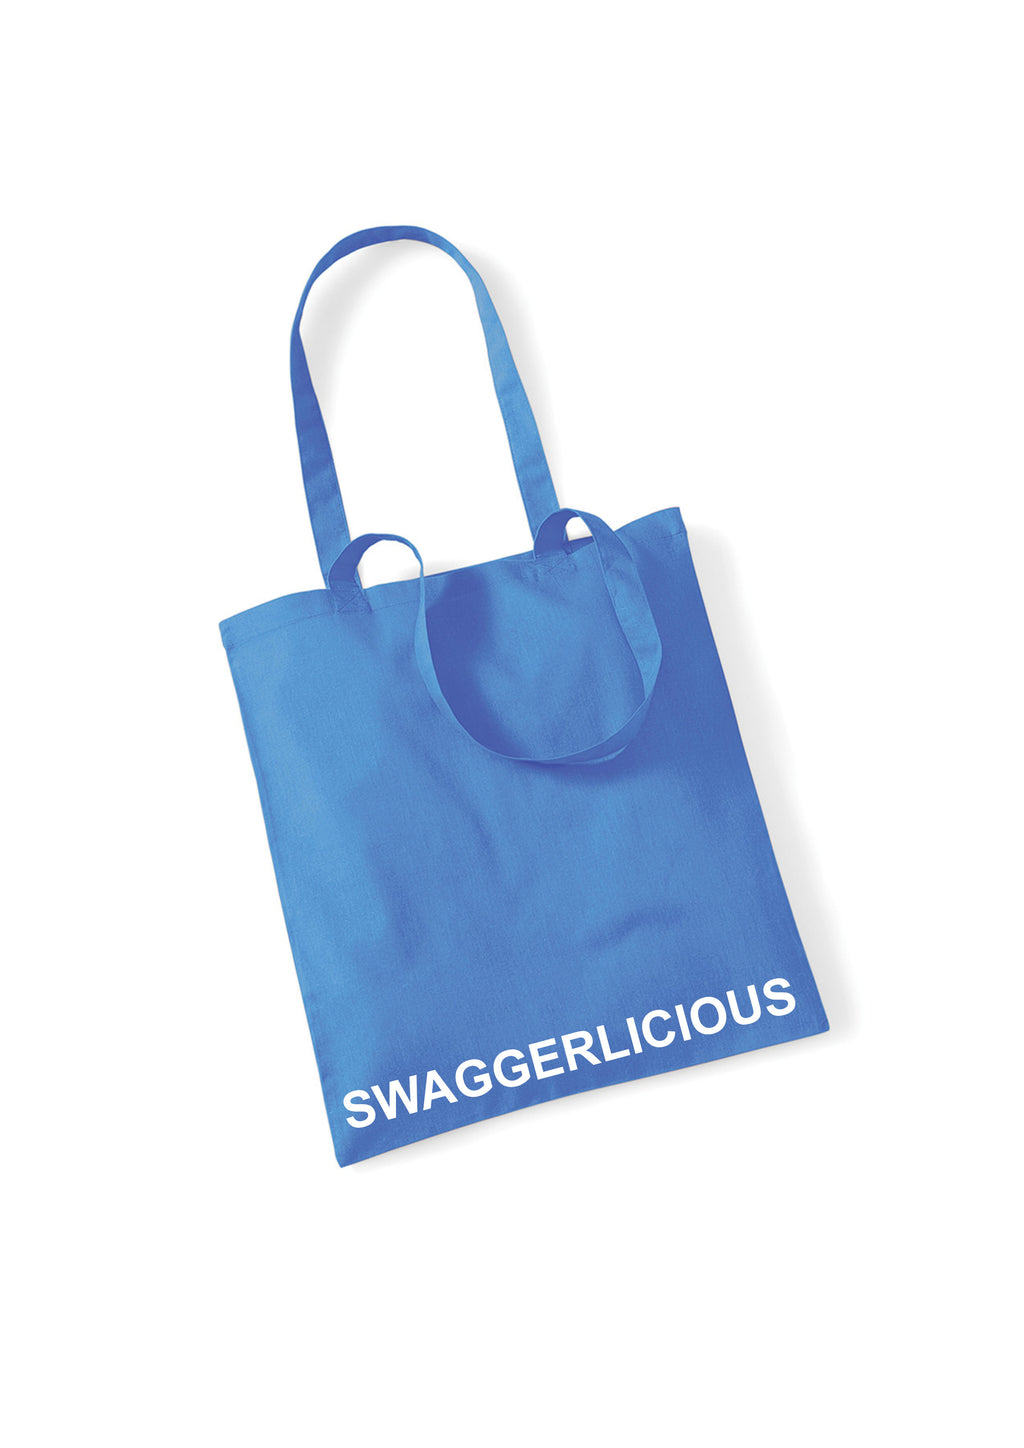 Swaggerlicious Bright Blue Tote Bag - swaggerlicious-clothing.com